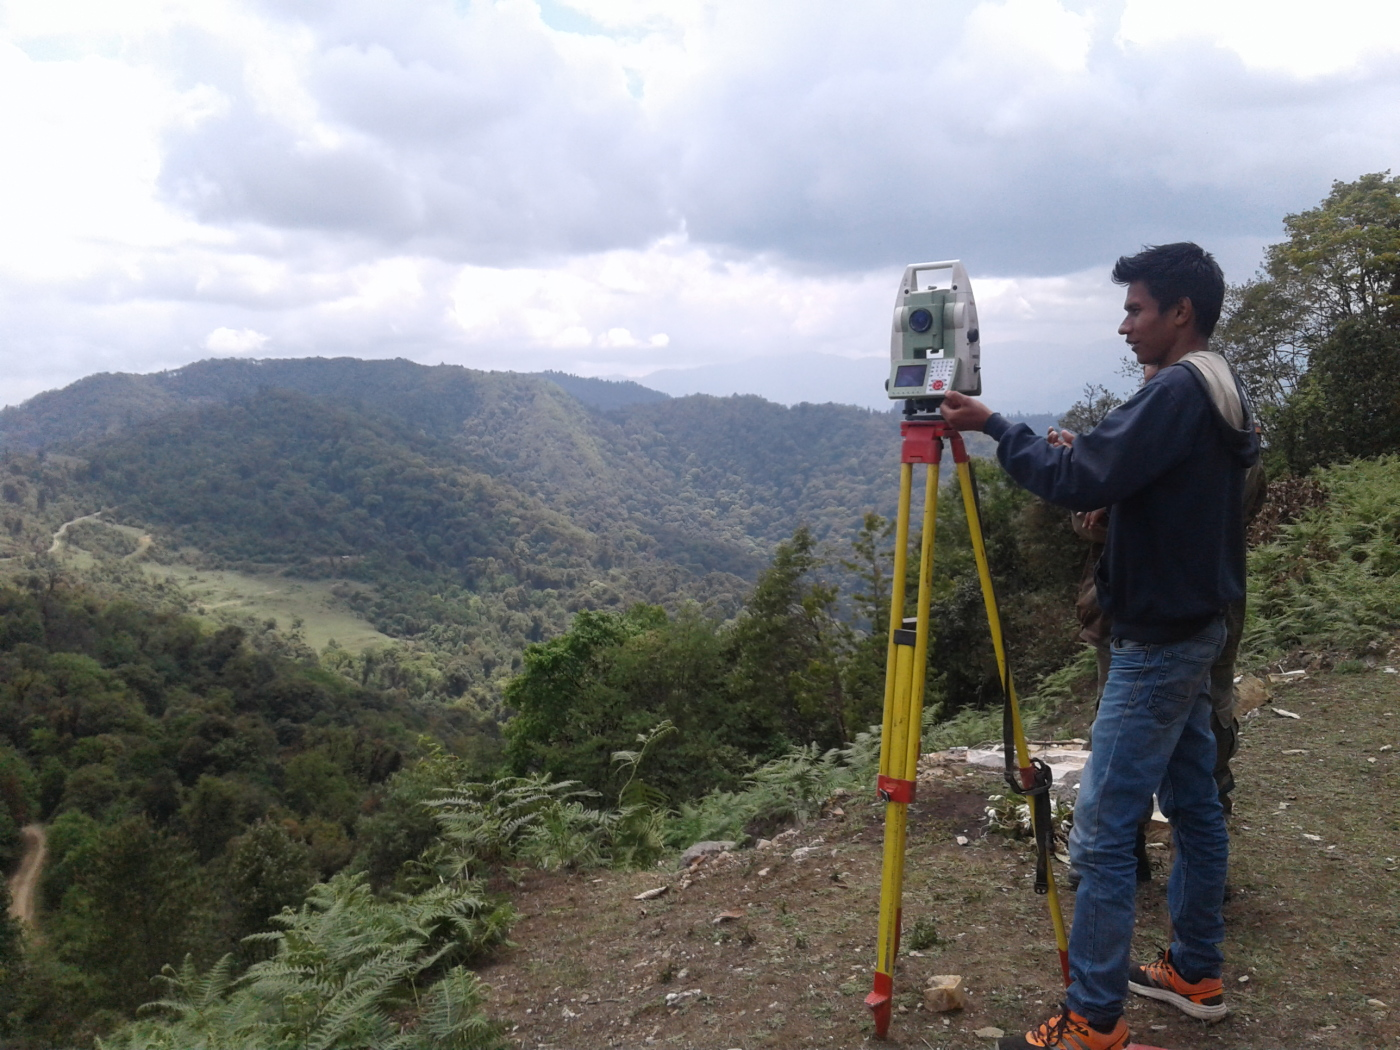 Surveying with ETS